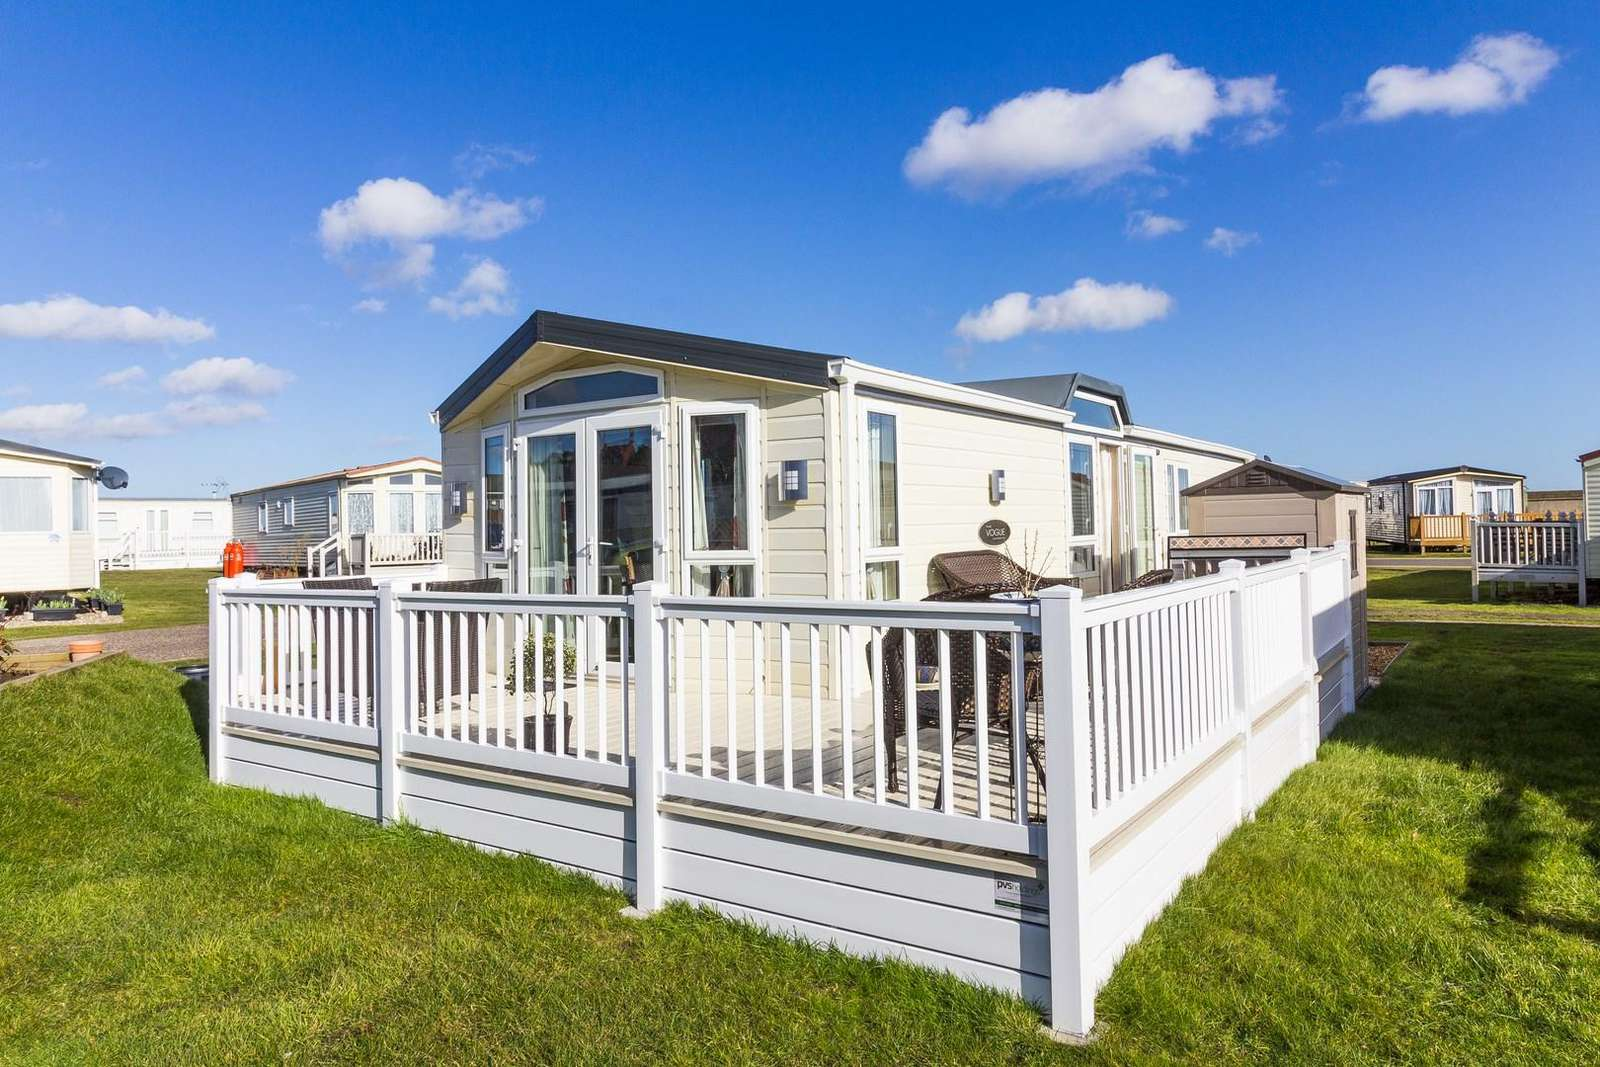 Luxury holiday home in Suffolk